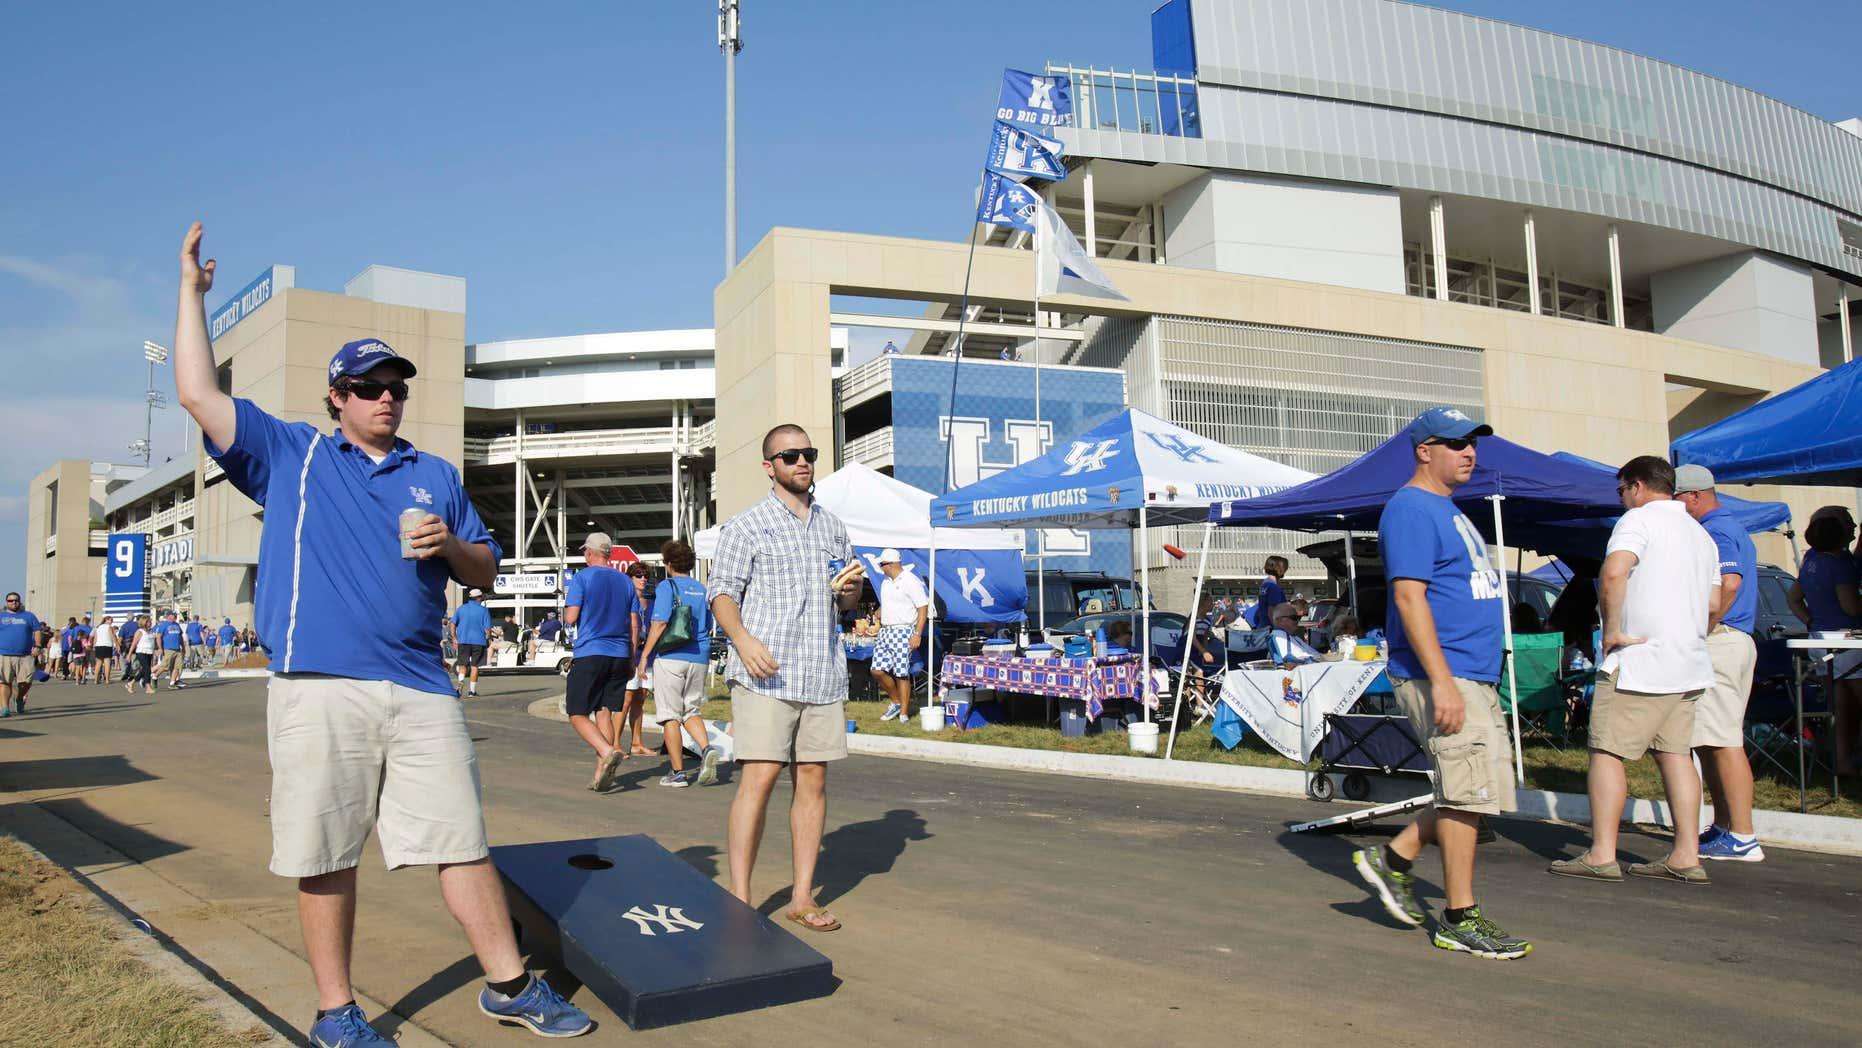 Sept. 5, 2015: Kentucky students Zac Houston, left, and Kyle Polley tailgate in the parking lot of the newly remodeled Commonwealth Stadium before Kentucky plays Louisiana-Lafayette in an NCAA college football game in Lexington, Ky.